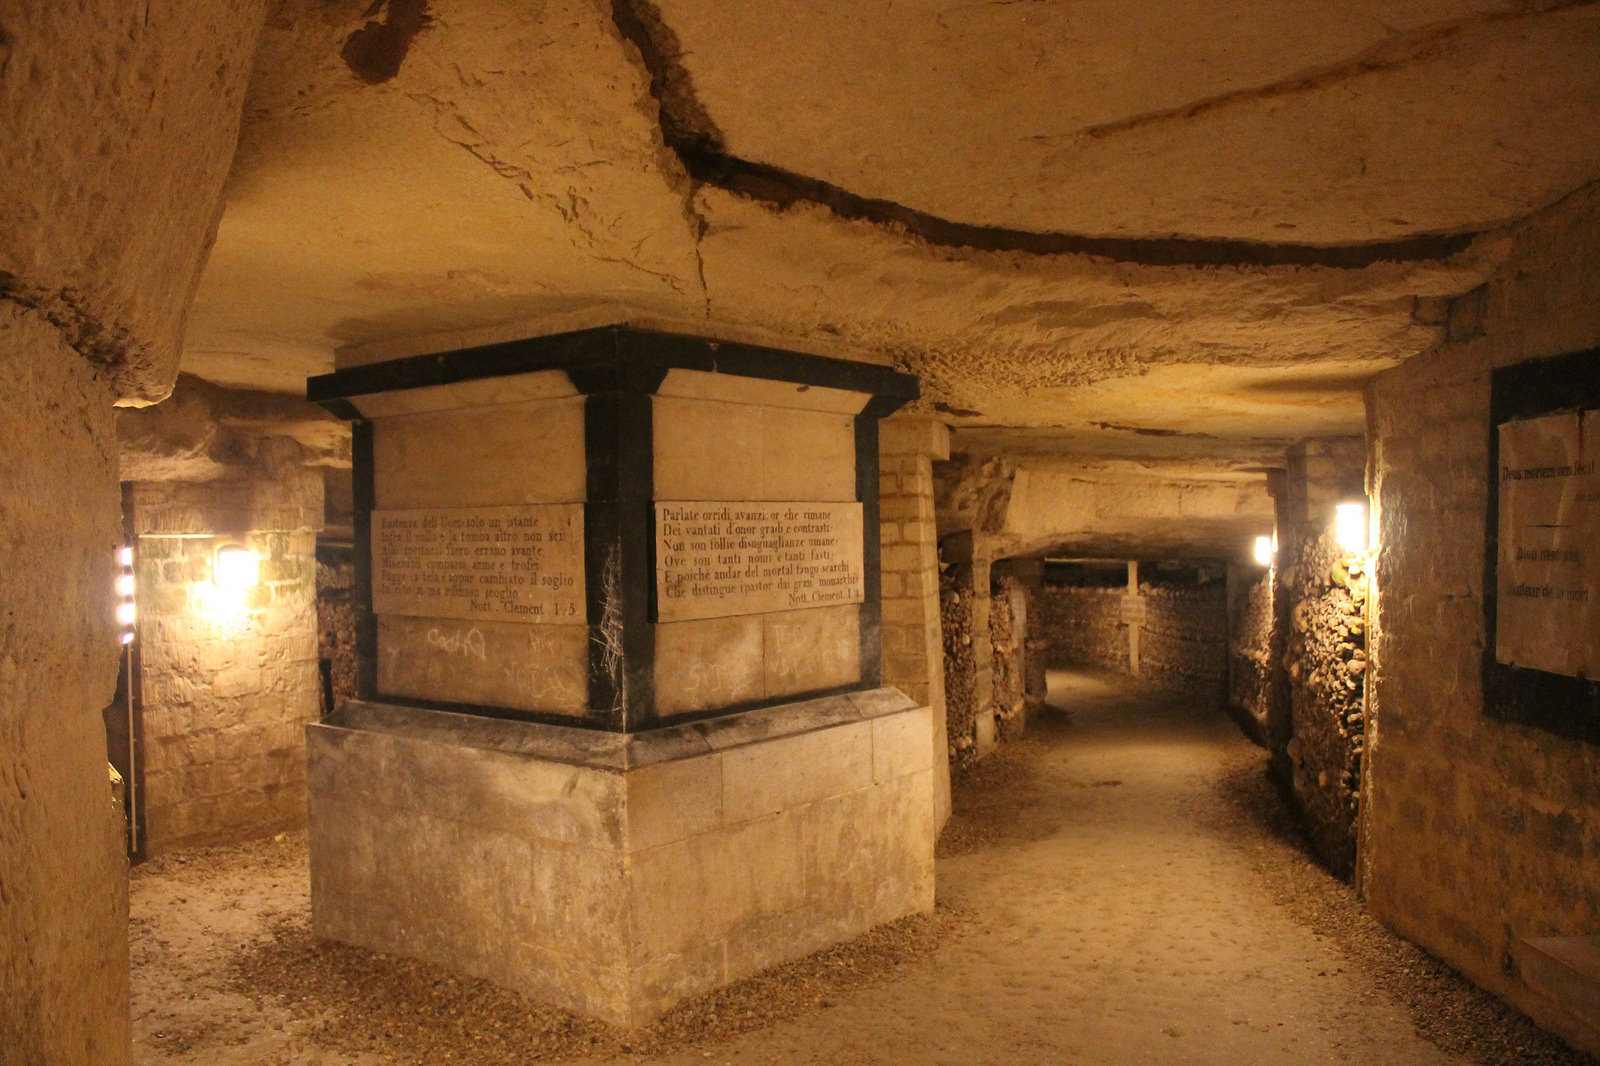 2 Parisian catacombs: dead remember everything